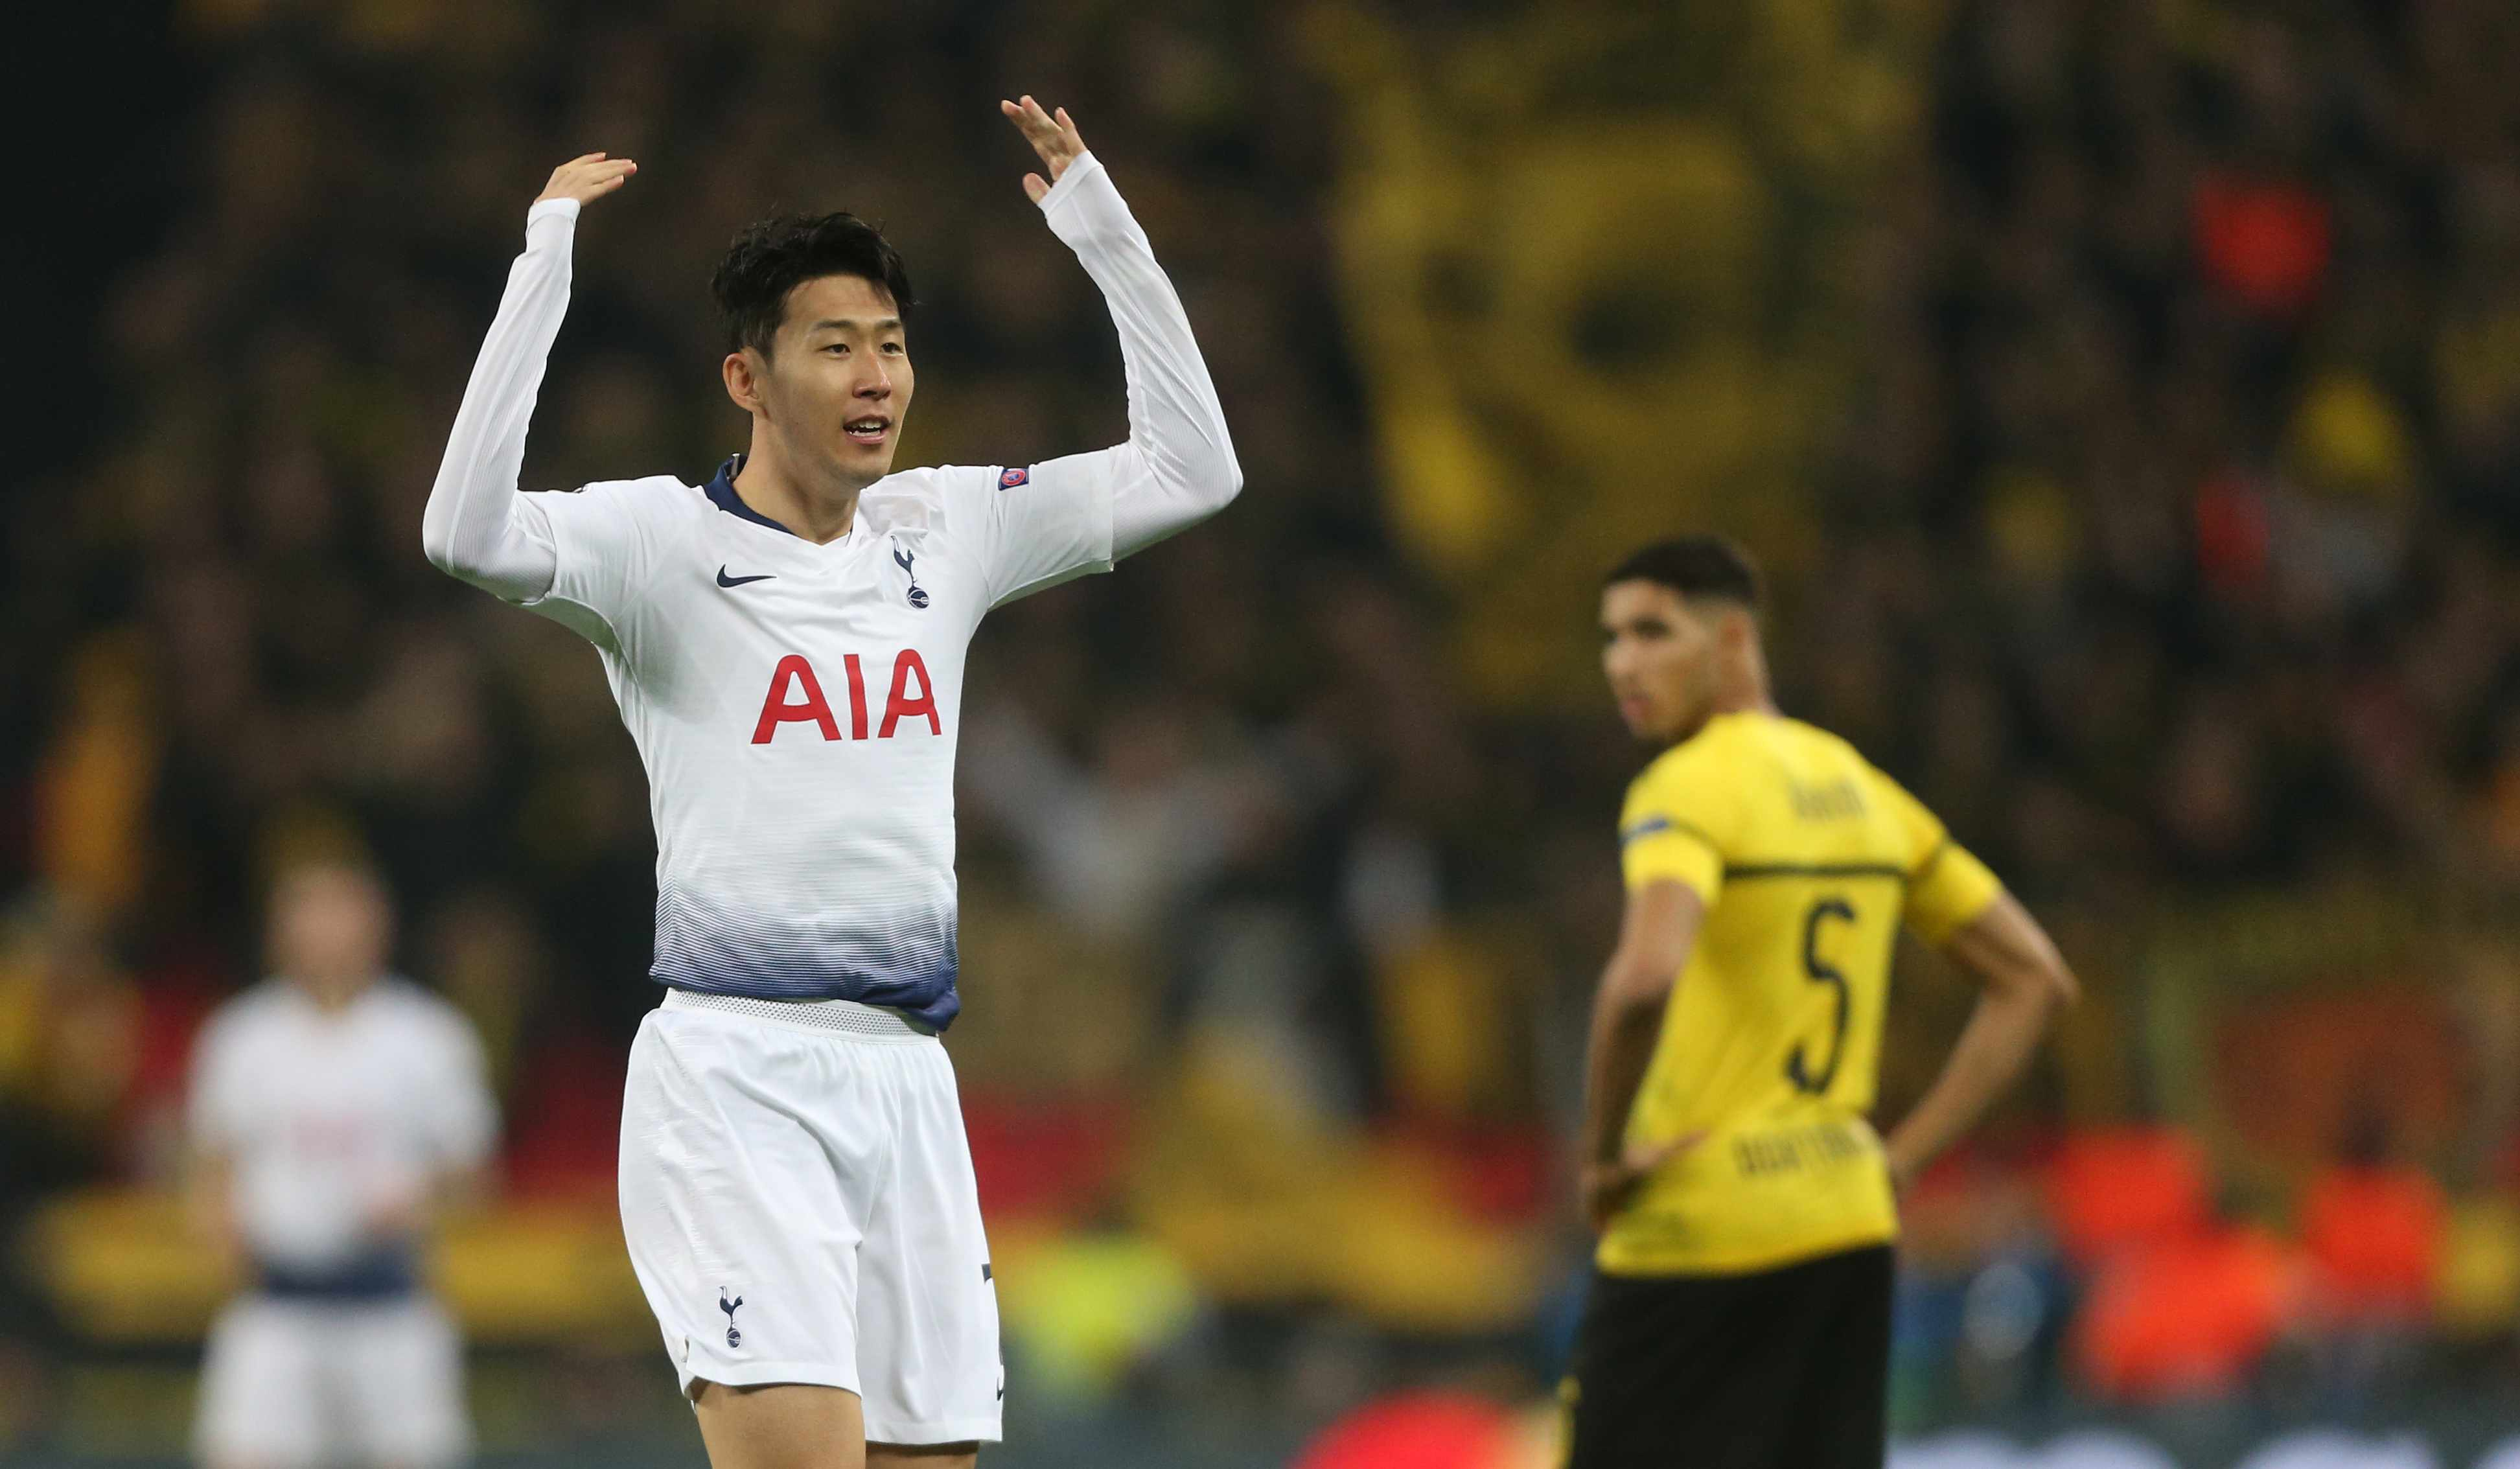 LONDON, ENGLAND - FEBRUARY 13: Tottenham Hotspur's Son Heung-Min celebrates scoring his side's first goal during the UEFA Champions League Round of 16 First Leg match between Tottenham Hotspur and Borussia Dortmund at Wembley Stadium on February 13, 2019 in London, England. (Photo by Rob Newell - CameraSport via Getty Images)